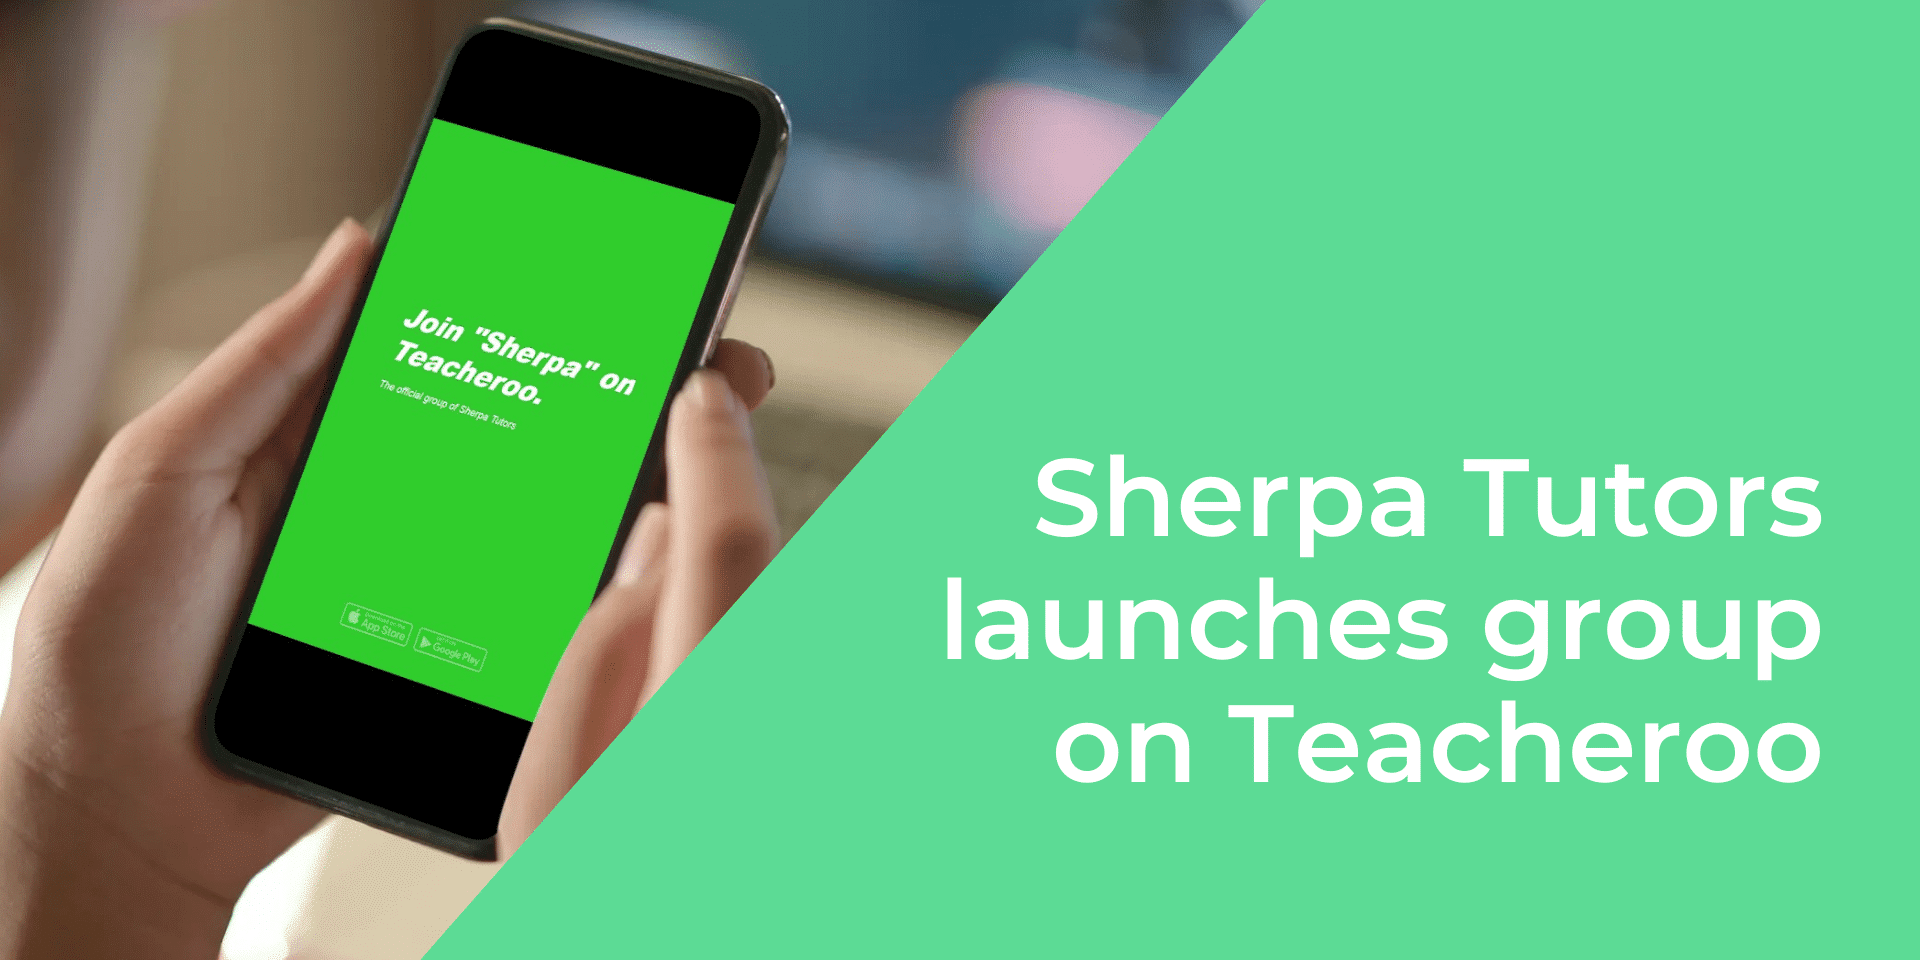 View of a mobile phone screen featuring Sherpa Tutors group on Teacheroo app